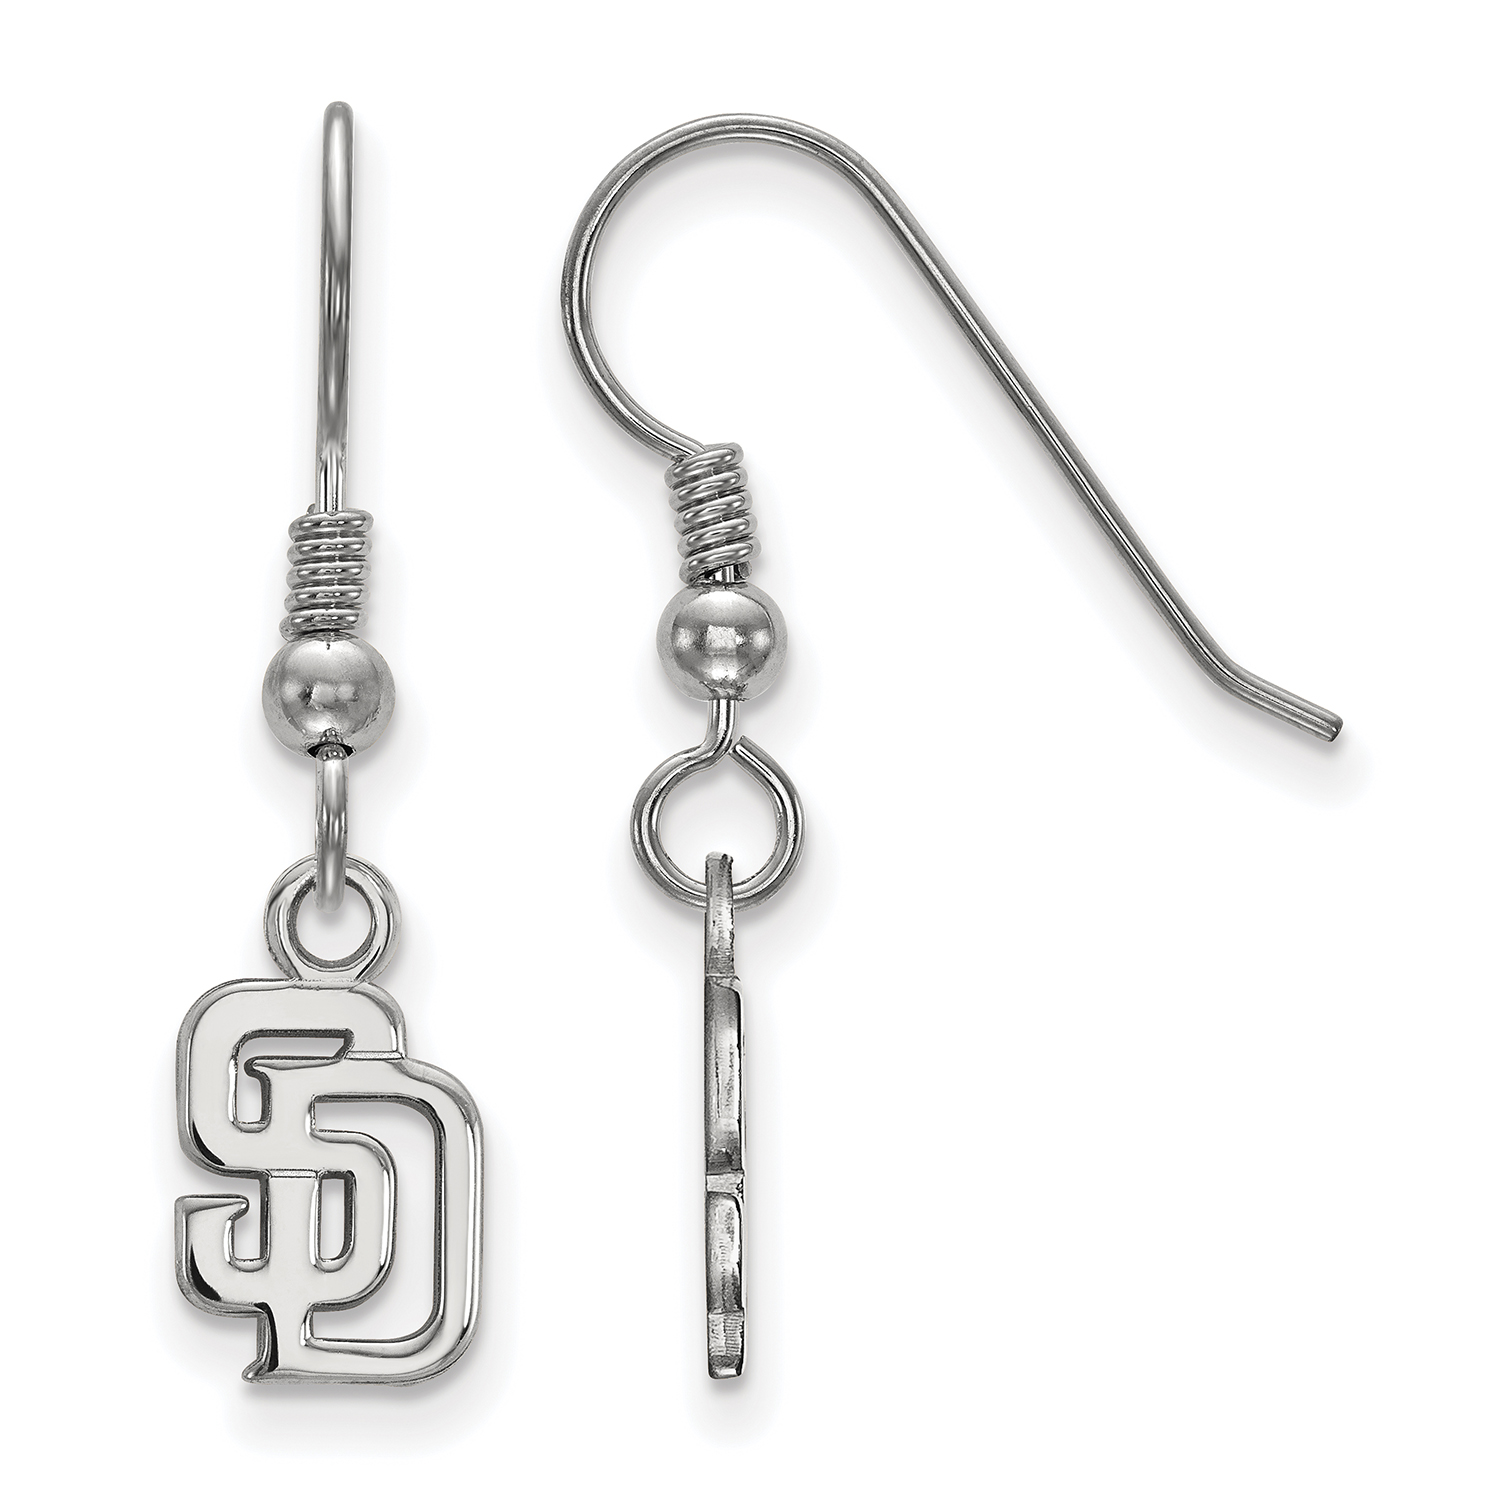 San Diego Padres Women's Sterling Silver Extra-Small Dangle Earrings - No Size